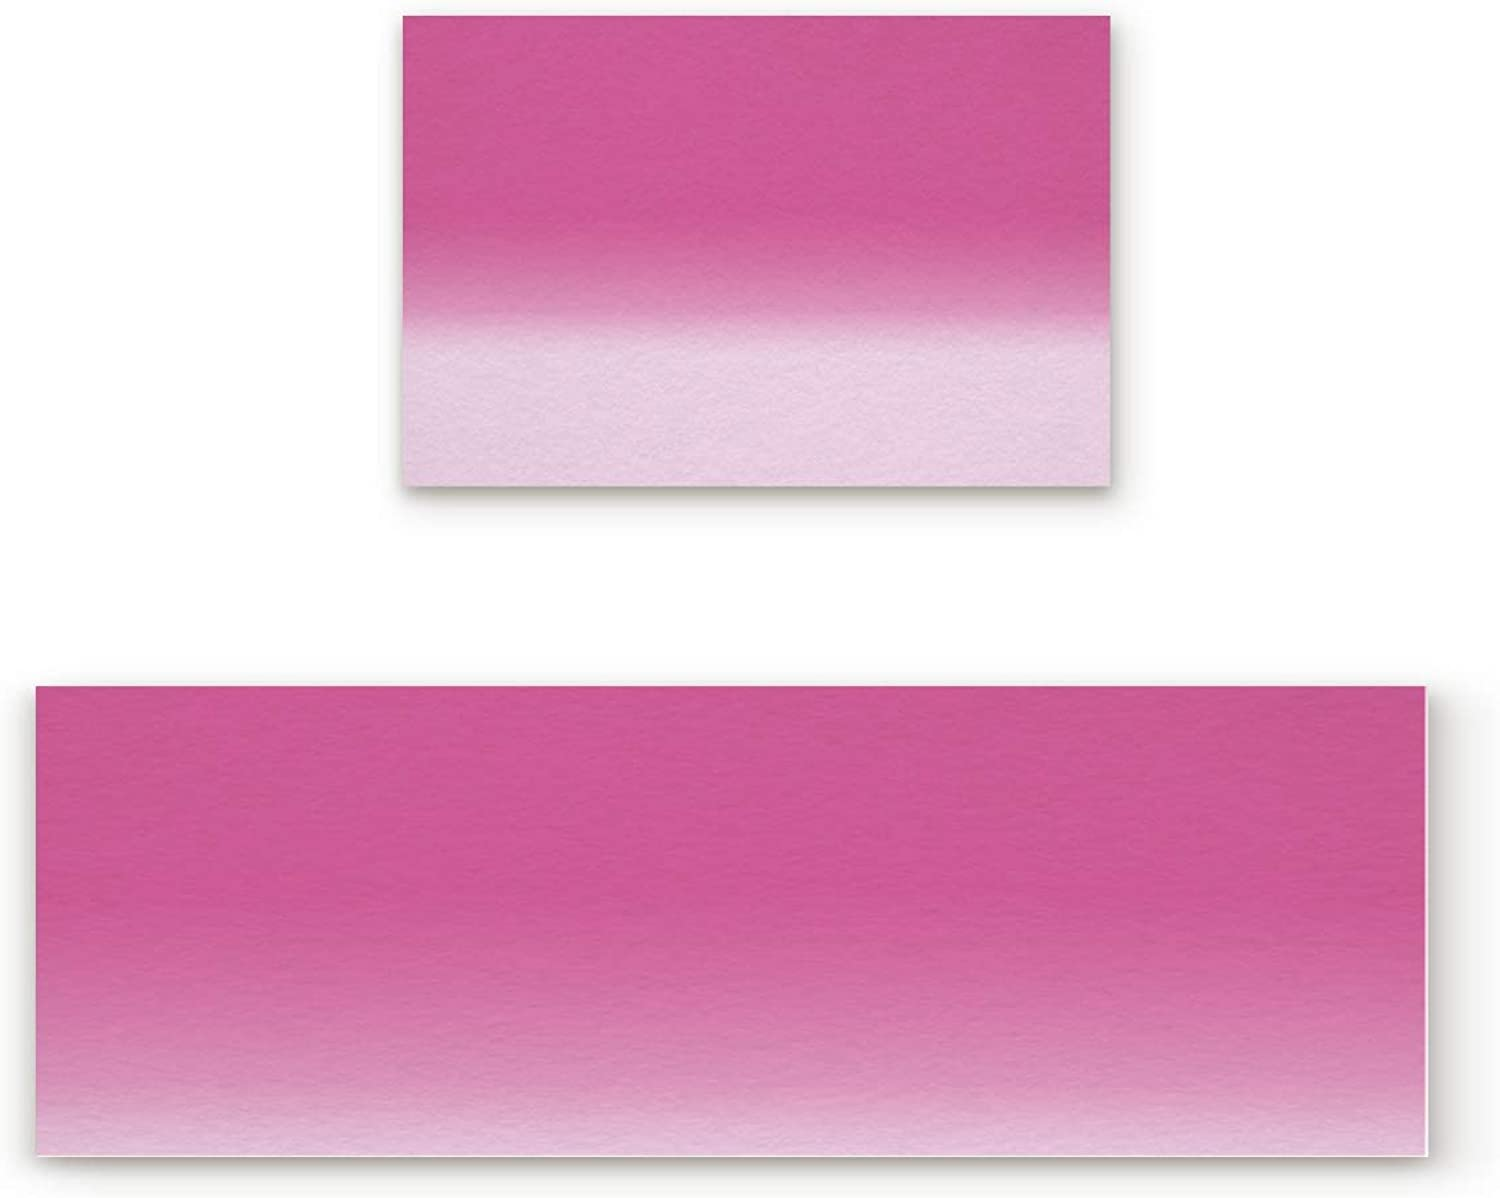 Aomike 2 Piece Non-Slip Kitchen Mat Rubber Backing Doormat Gradient Pink and pink Red Runner Rug Set, Hallway Living Room Balcony Bathroom Carpet Sets (23.6  x 35.4 +23.6  x 70.9 )